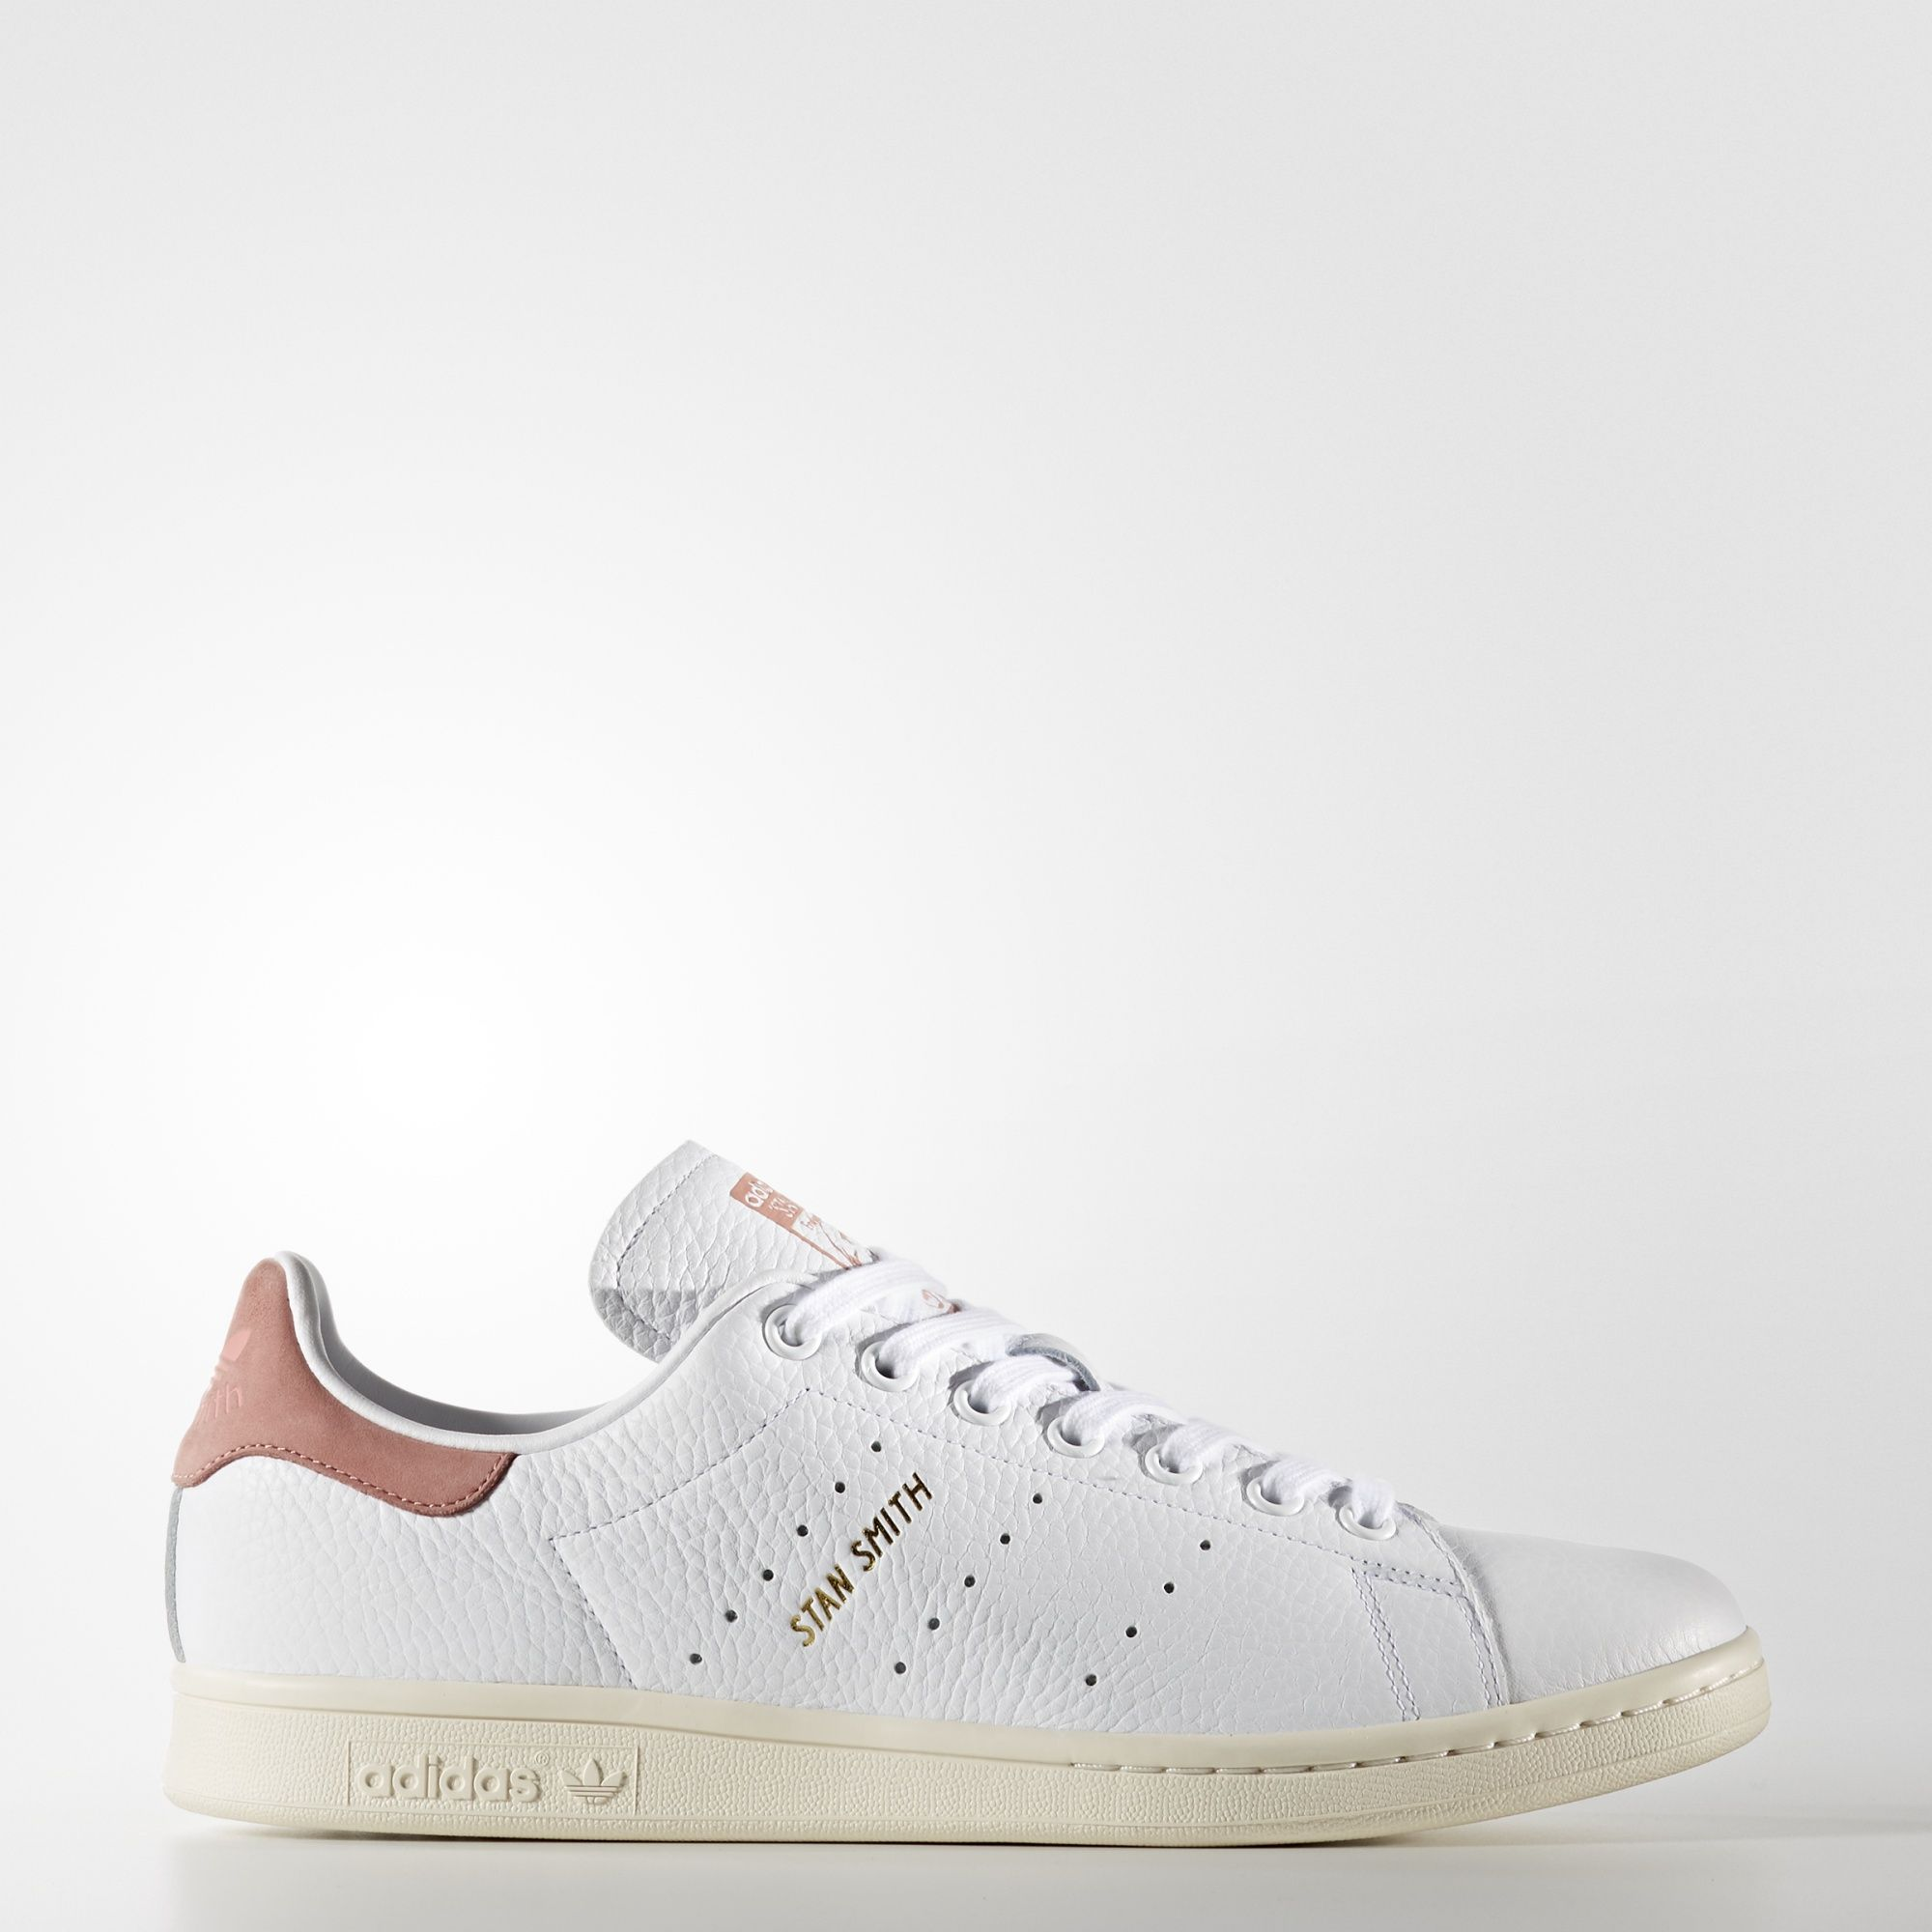 Stan Smith's signature shoe debuted in the '70s as a pro